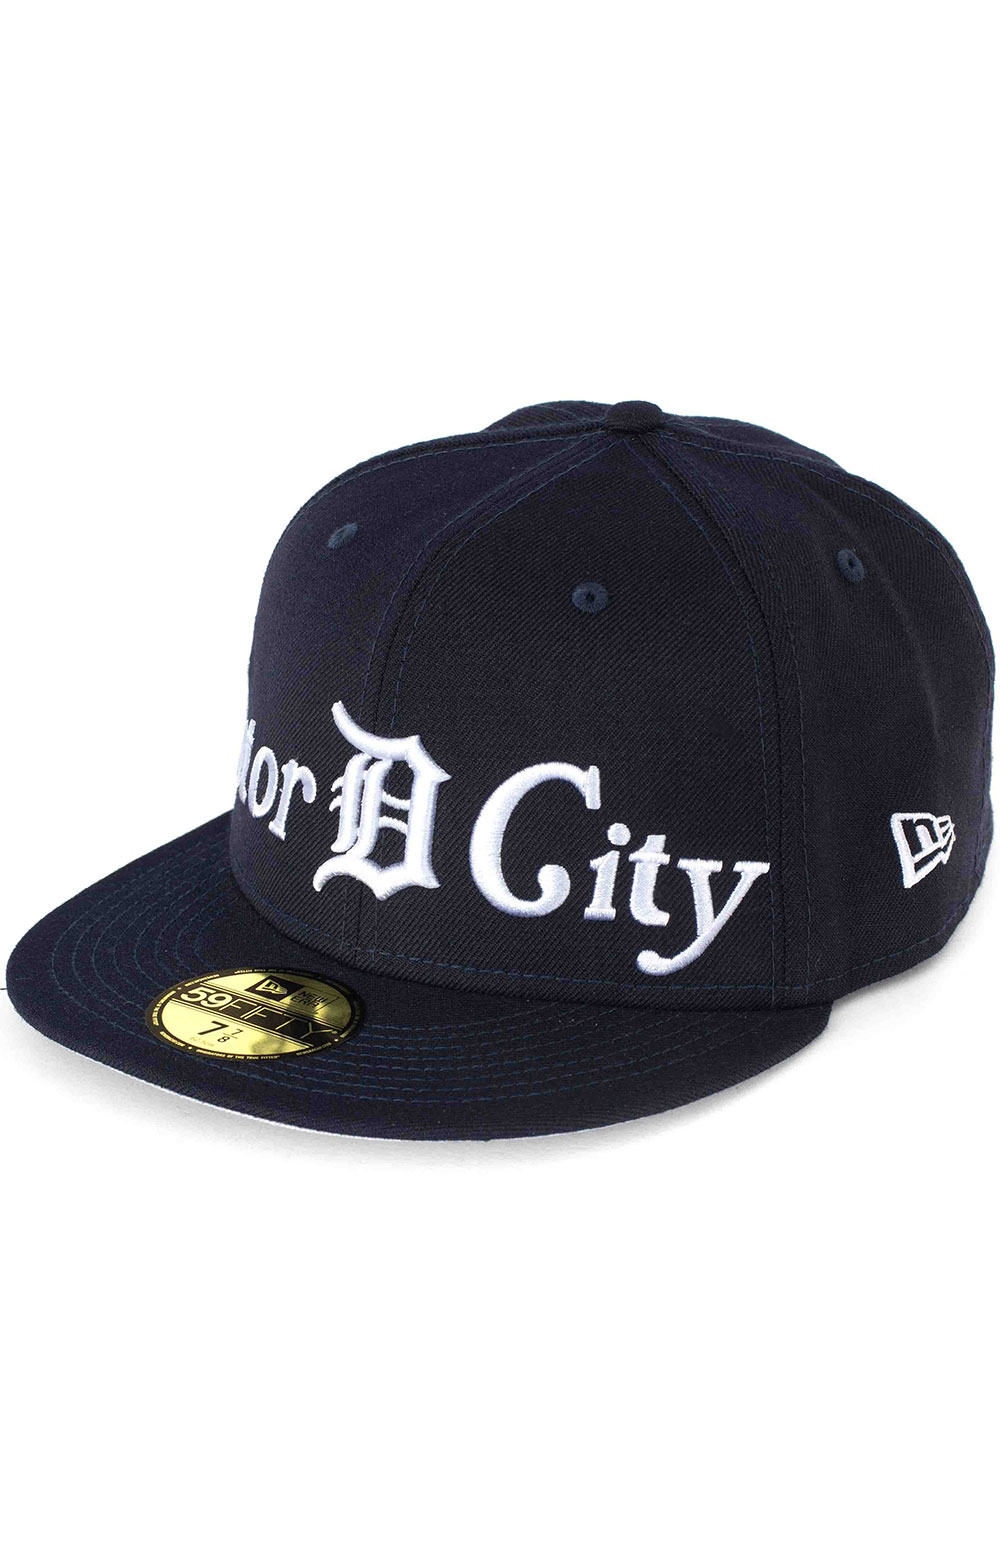 Detroit Tigers City Nicknames 59Fifty Fitted Hat - Navy